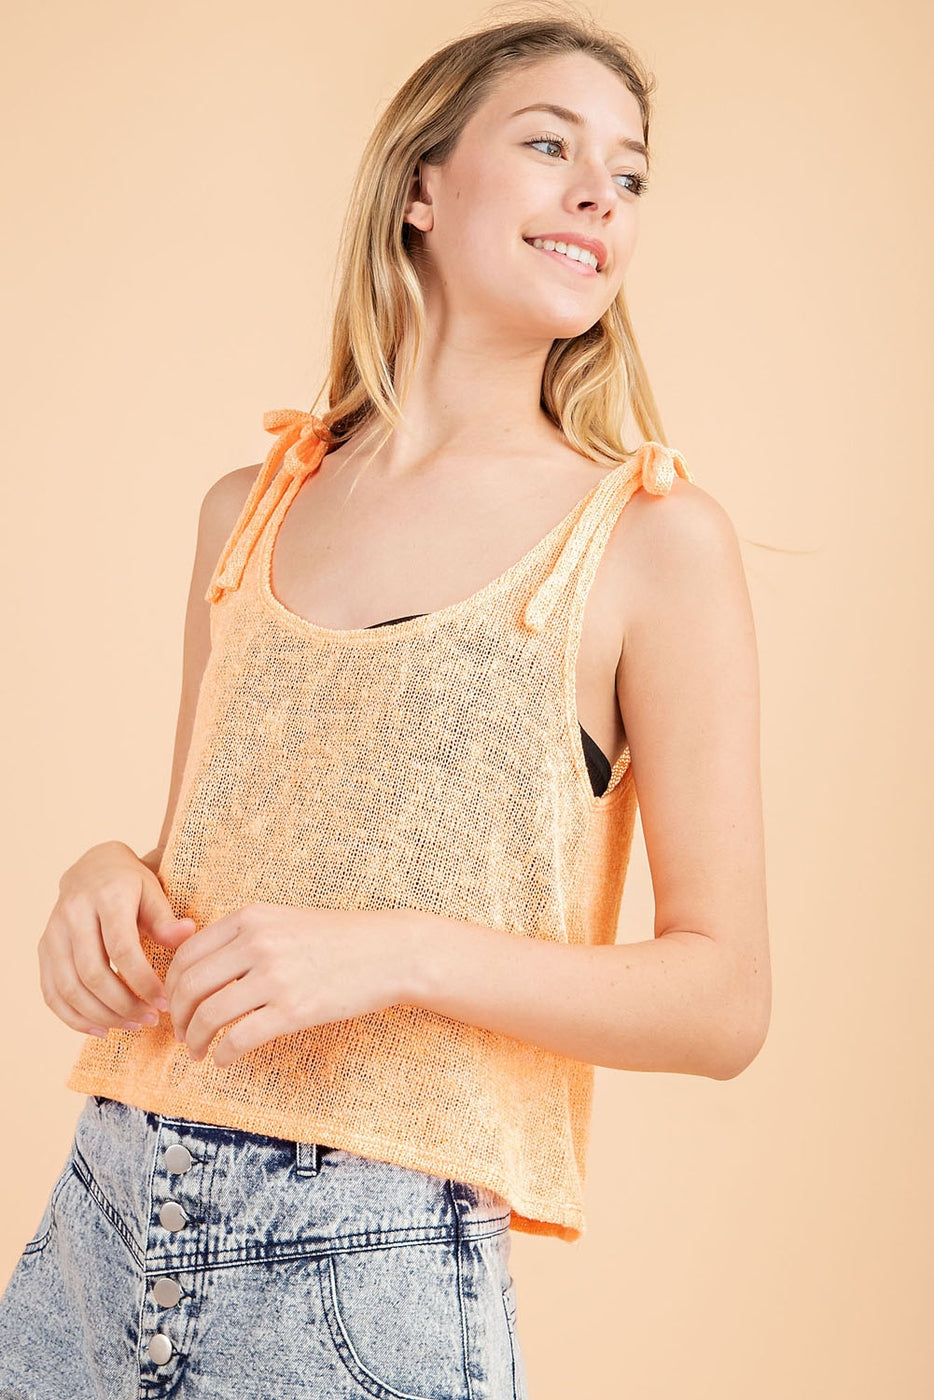 Sleeveless Knit Top With Shoulder Tie Detail - Siin Bees